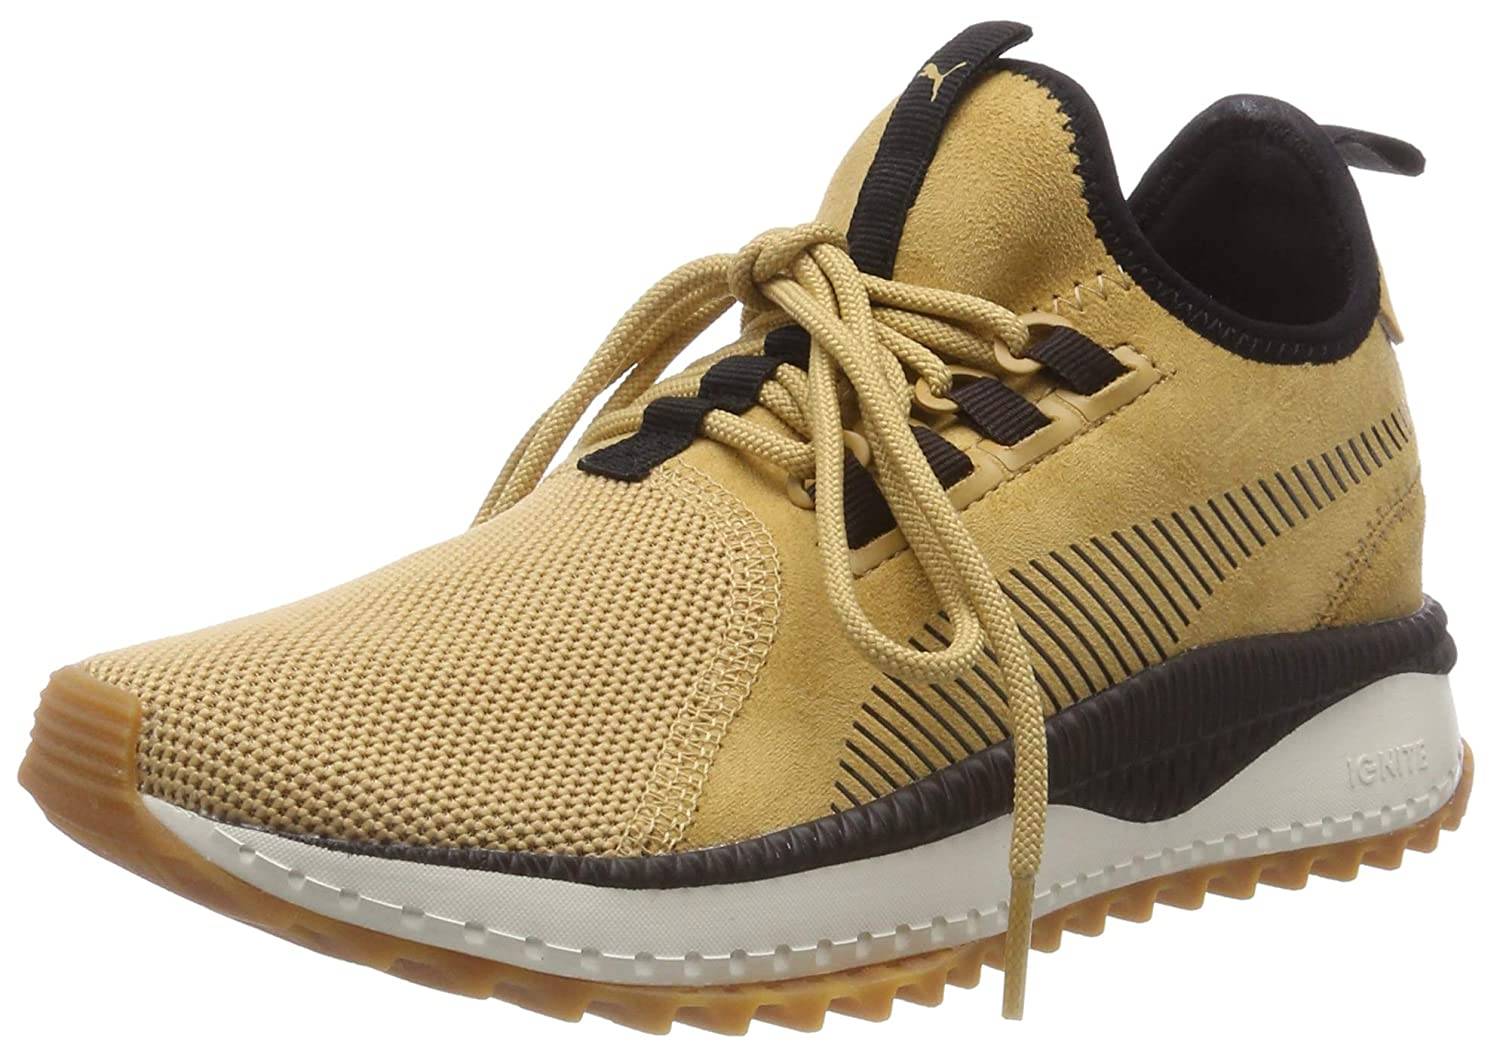 TALLA 43 EU. Puma Tsugi Apex Winterized, Zapatillas Unisex Adulto